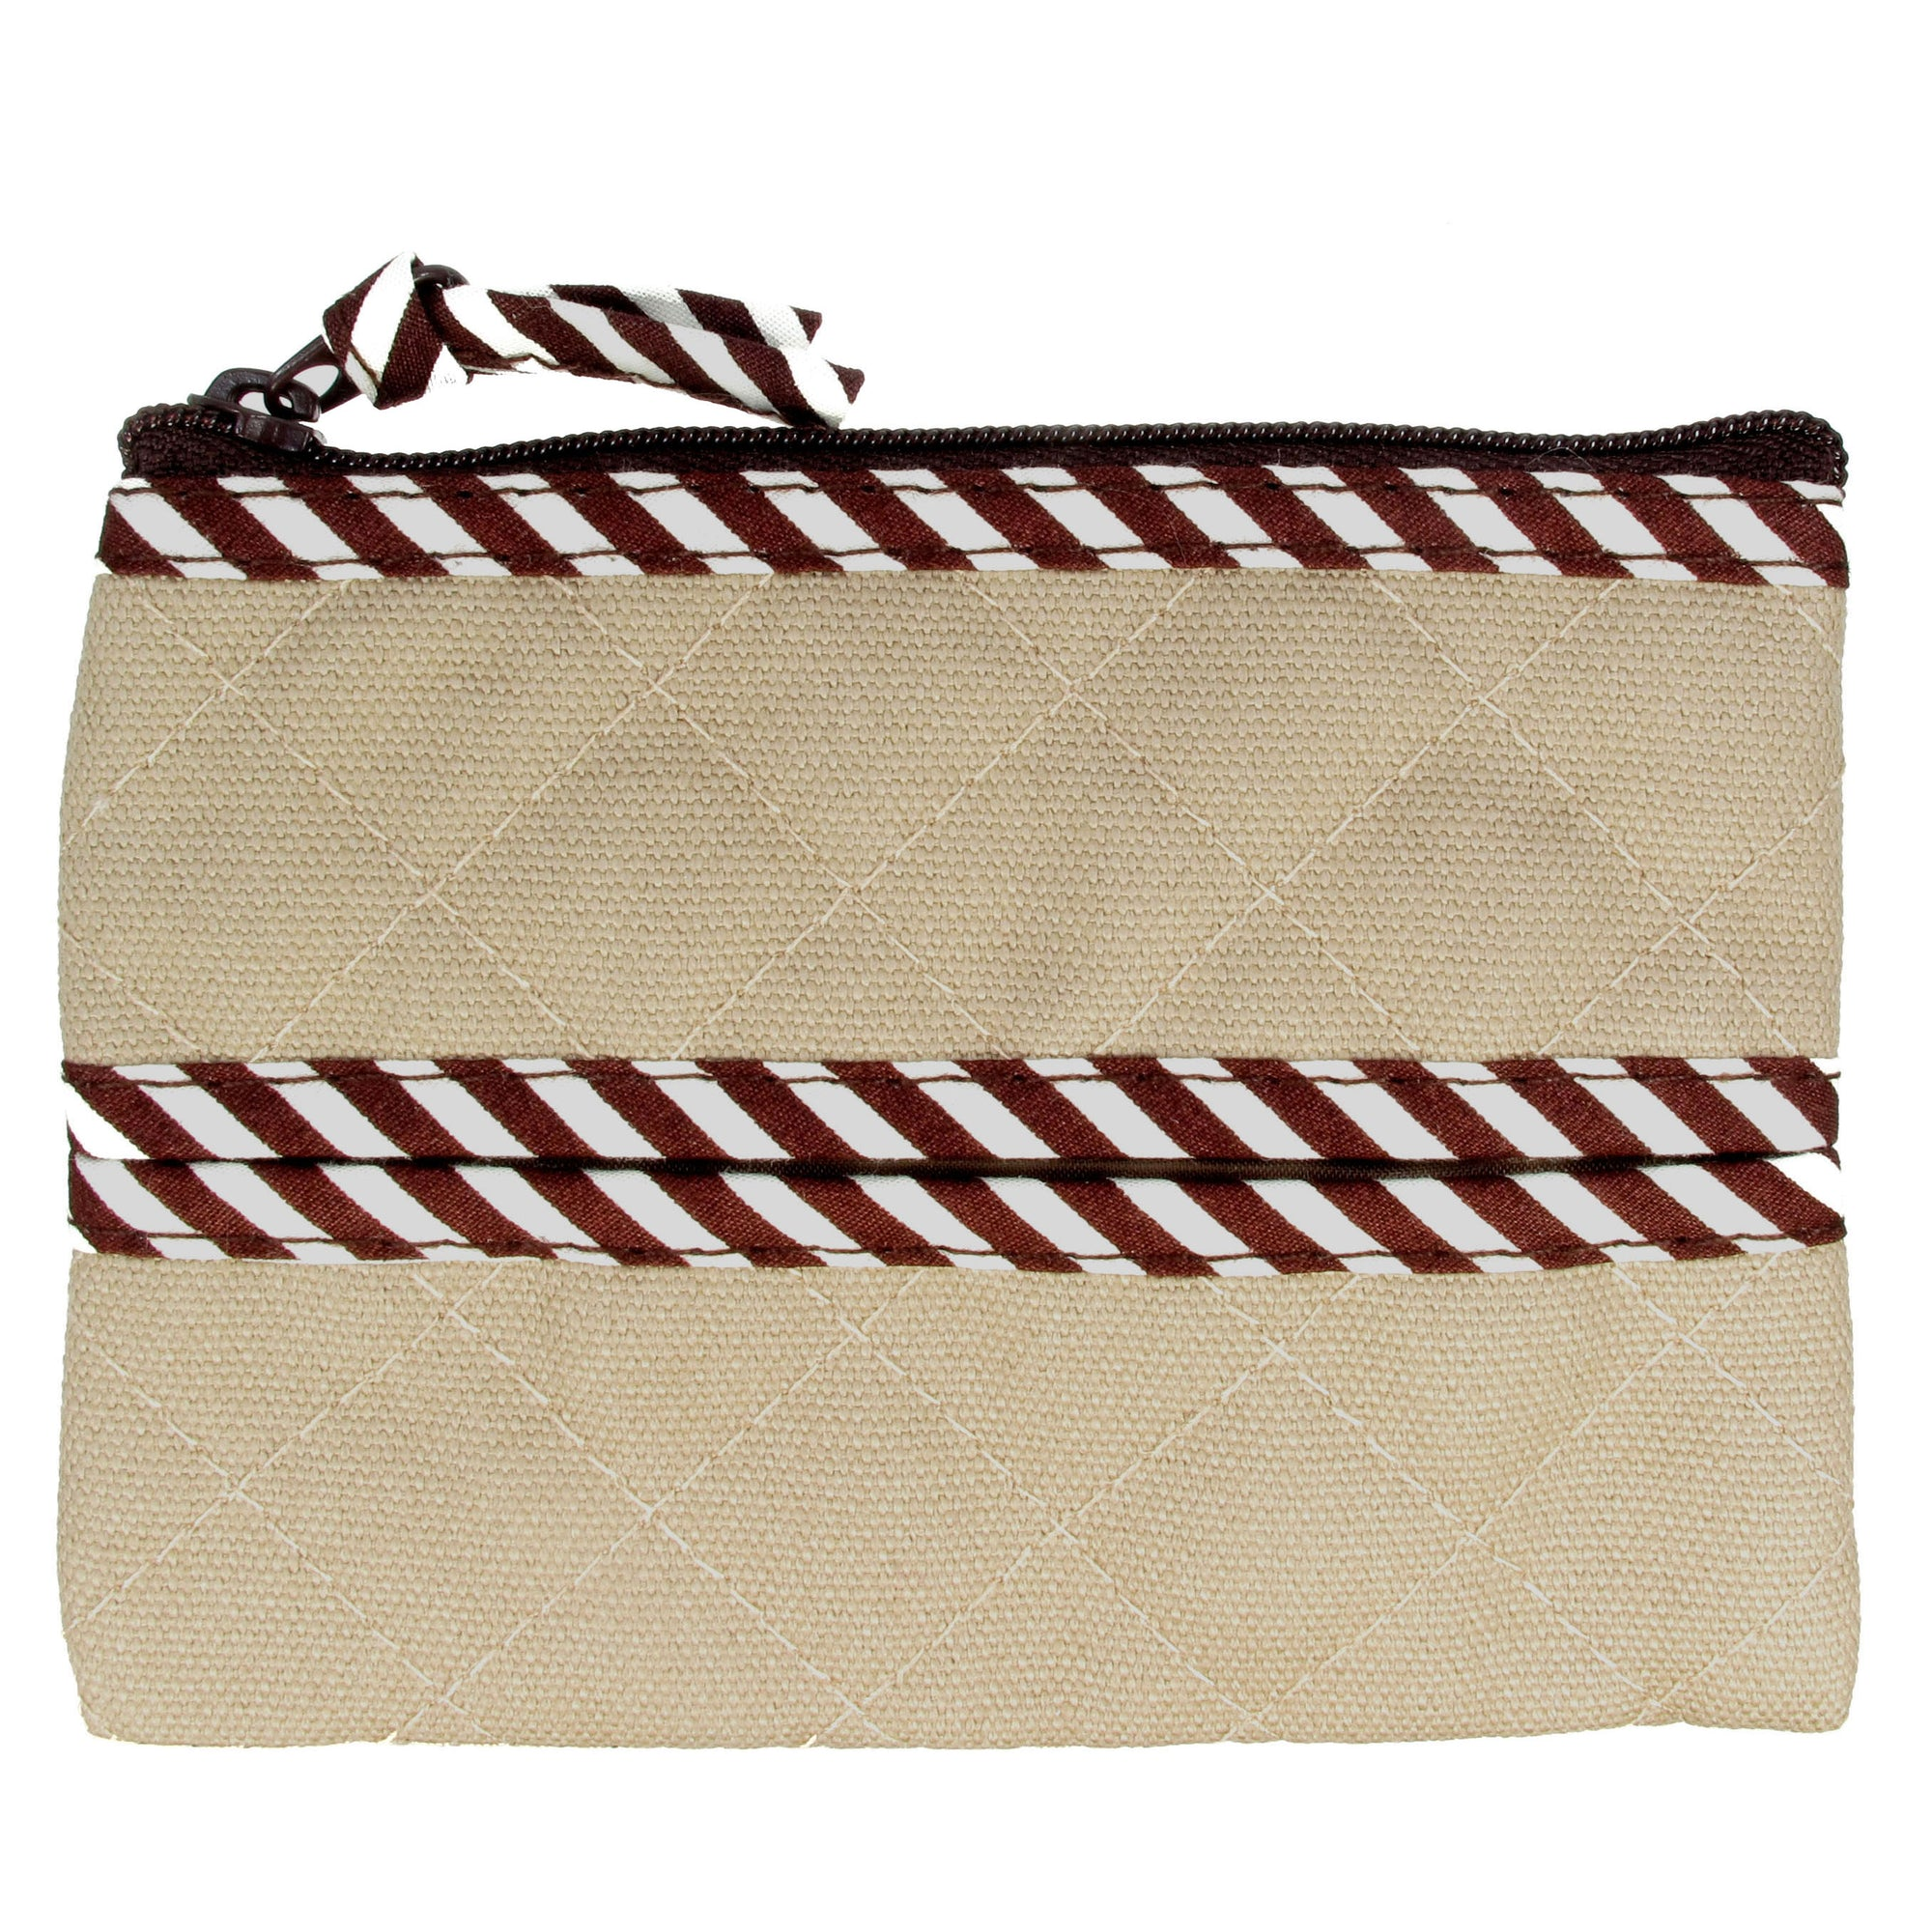 Coin Purse & Pouch, Quilted Canvas, Khaki